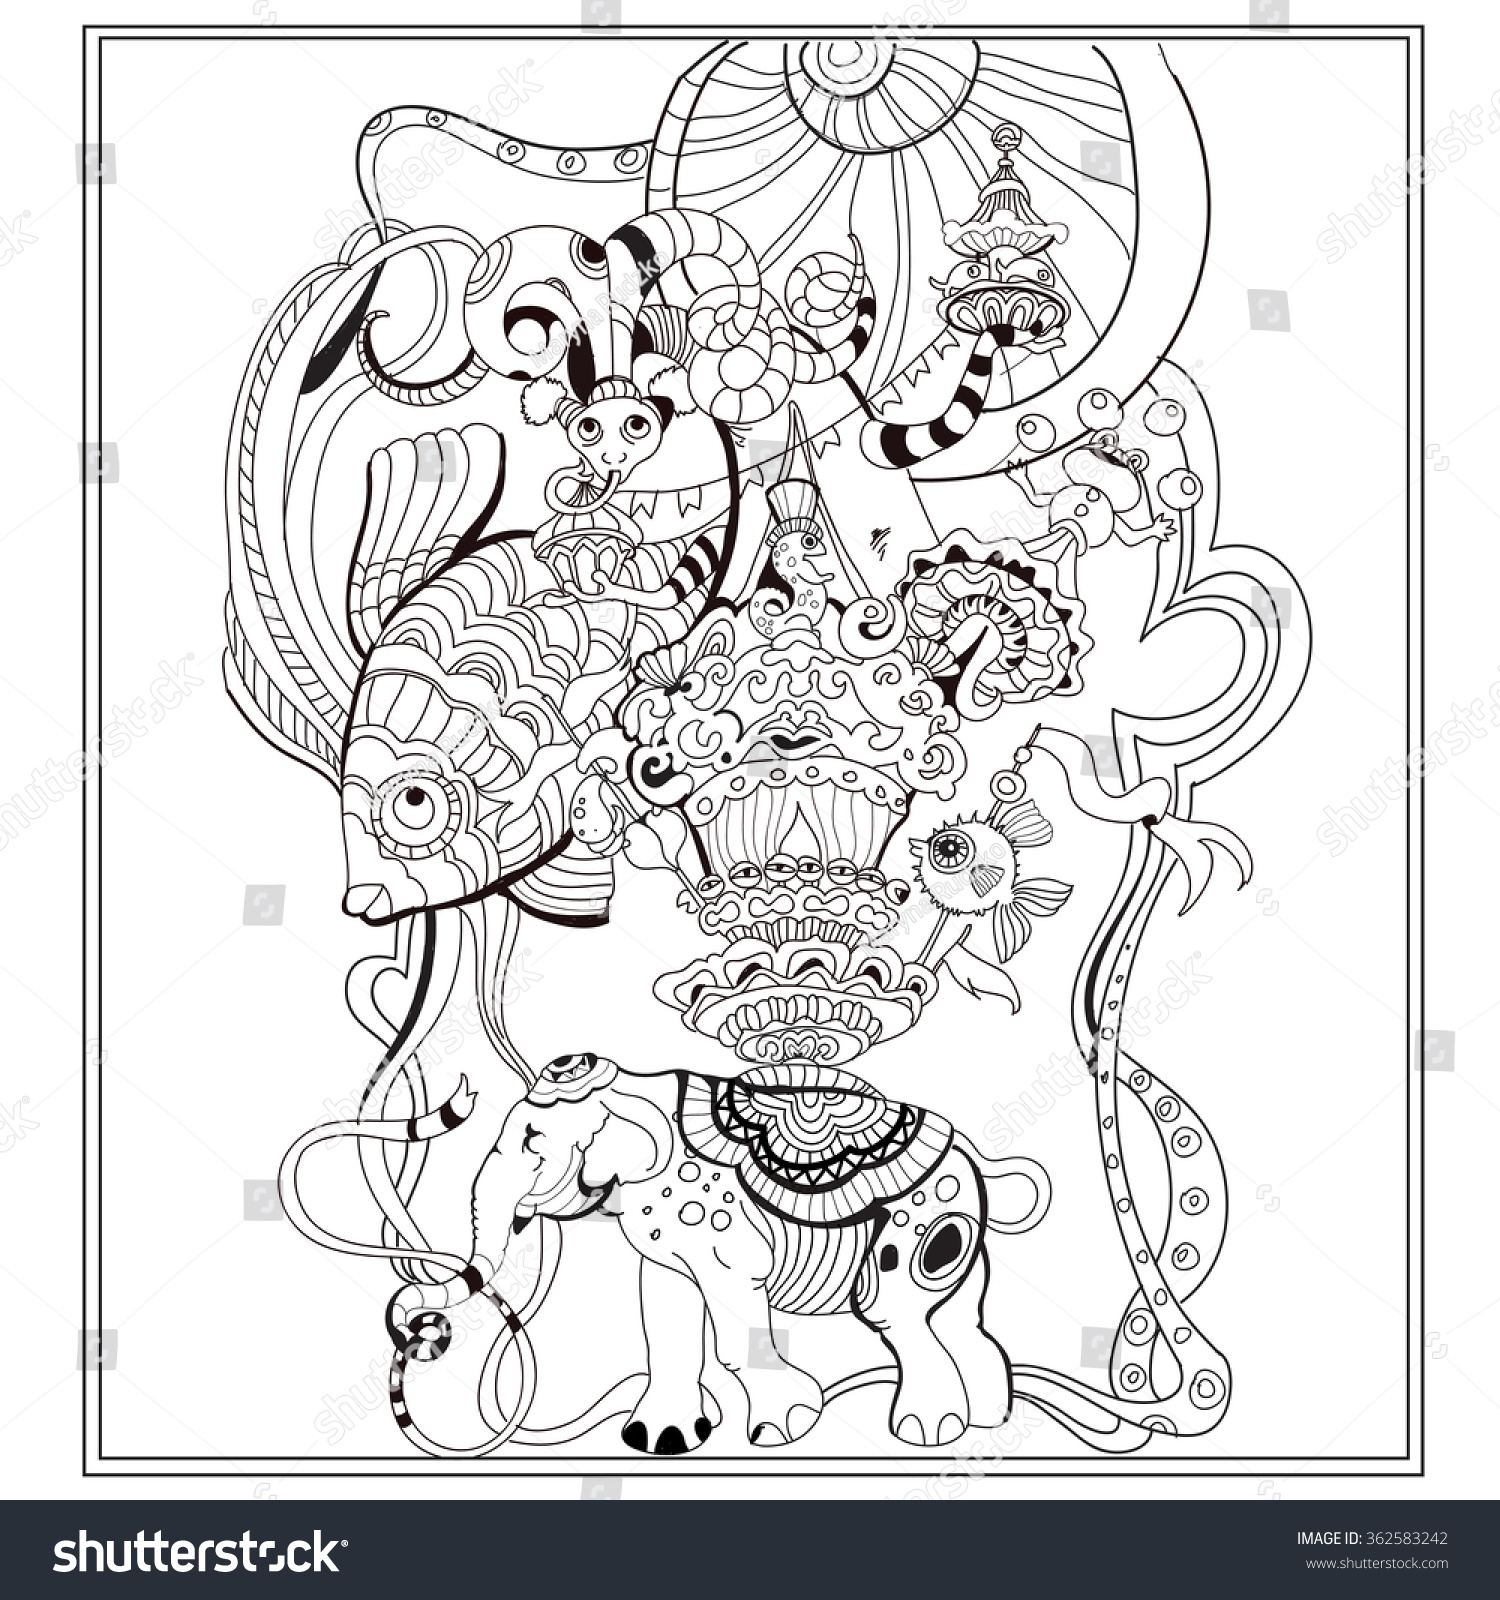 Vector Adult Coloring Book Page With Vintage Circus Ornament In Sketch Styleeps -3540